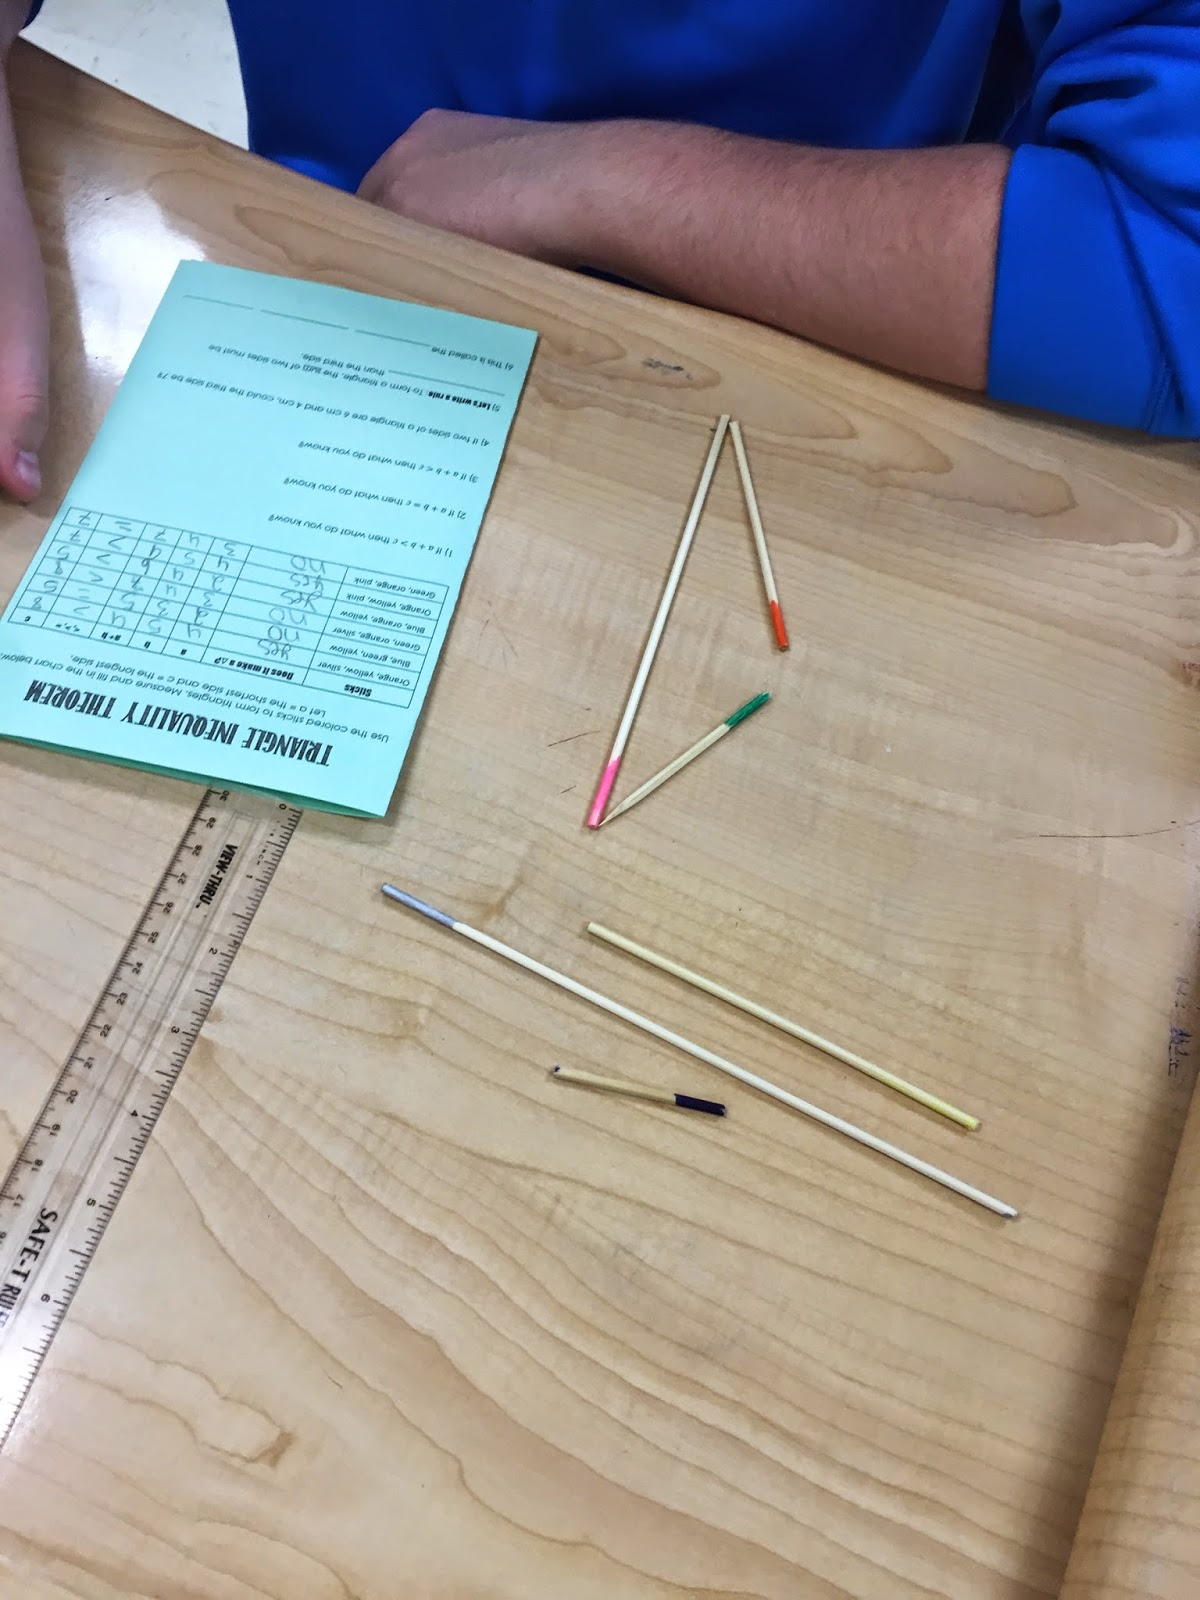 Misscalcul8 Triangle Inequality Skewers